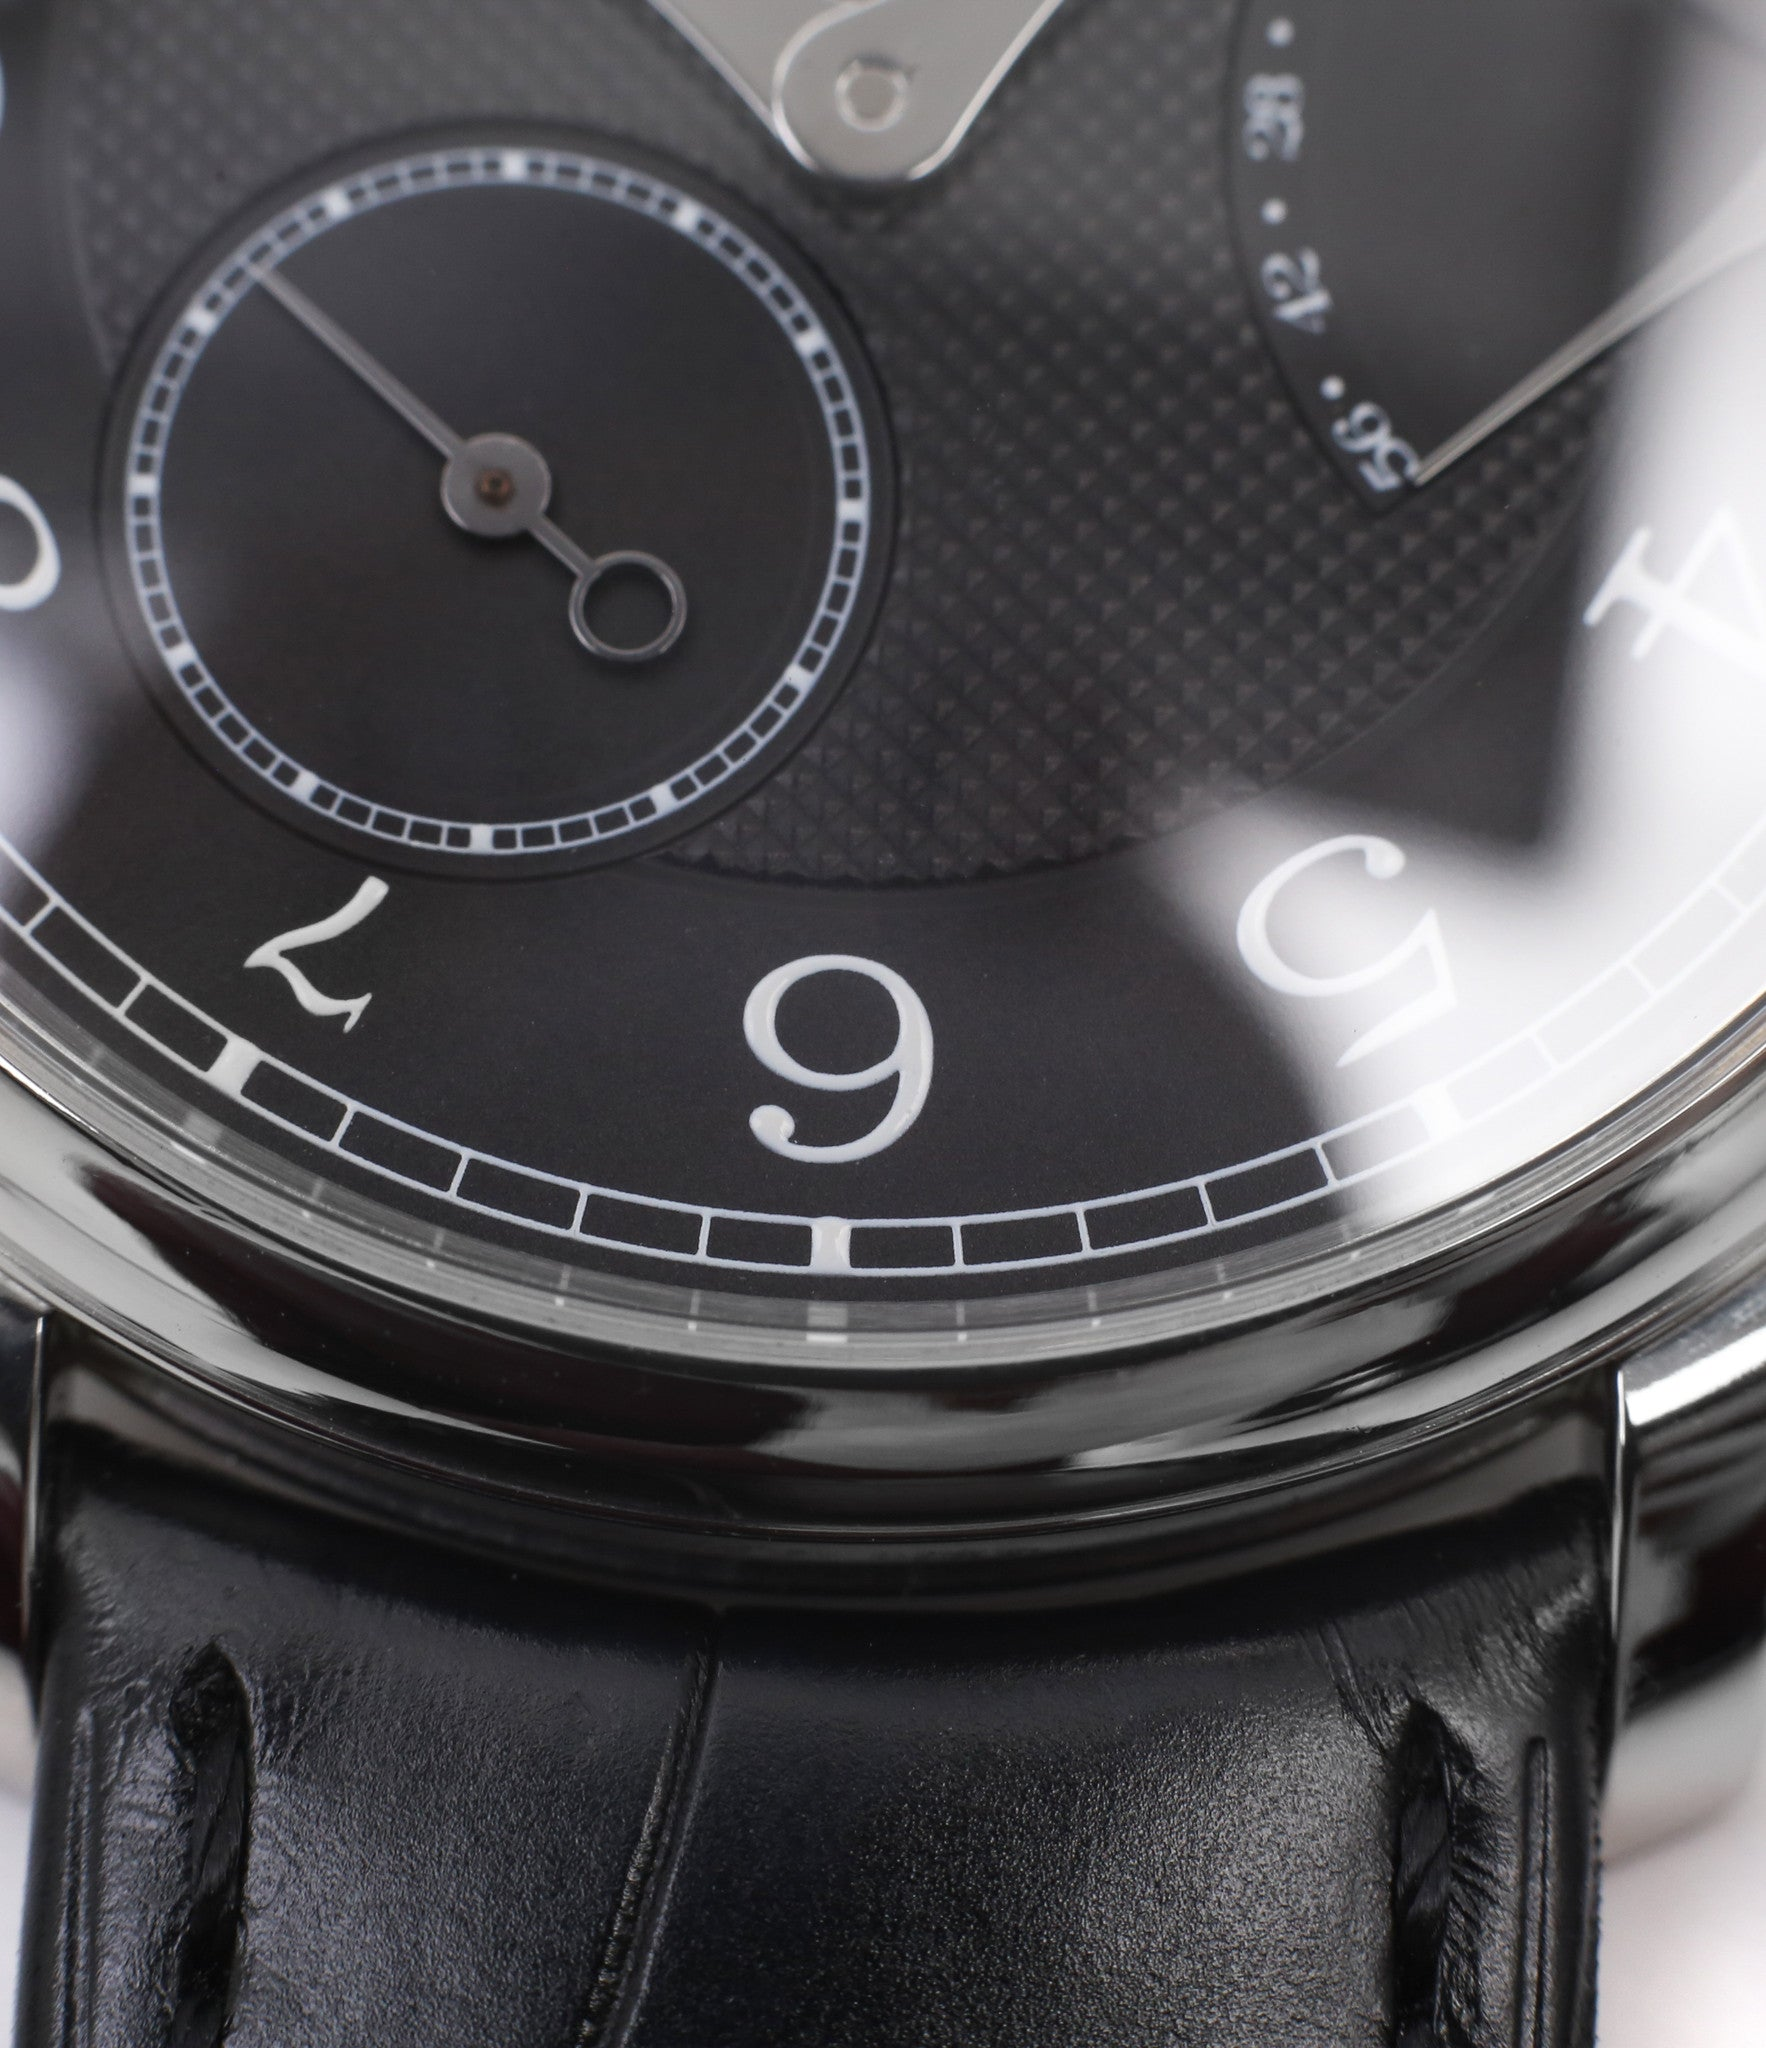 for sale F. P. Journe Chronometre Souverain Black label platinum 38 mm watch online at A Collected Man